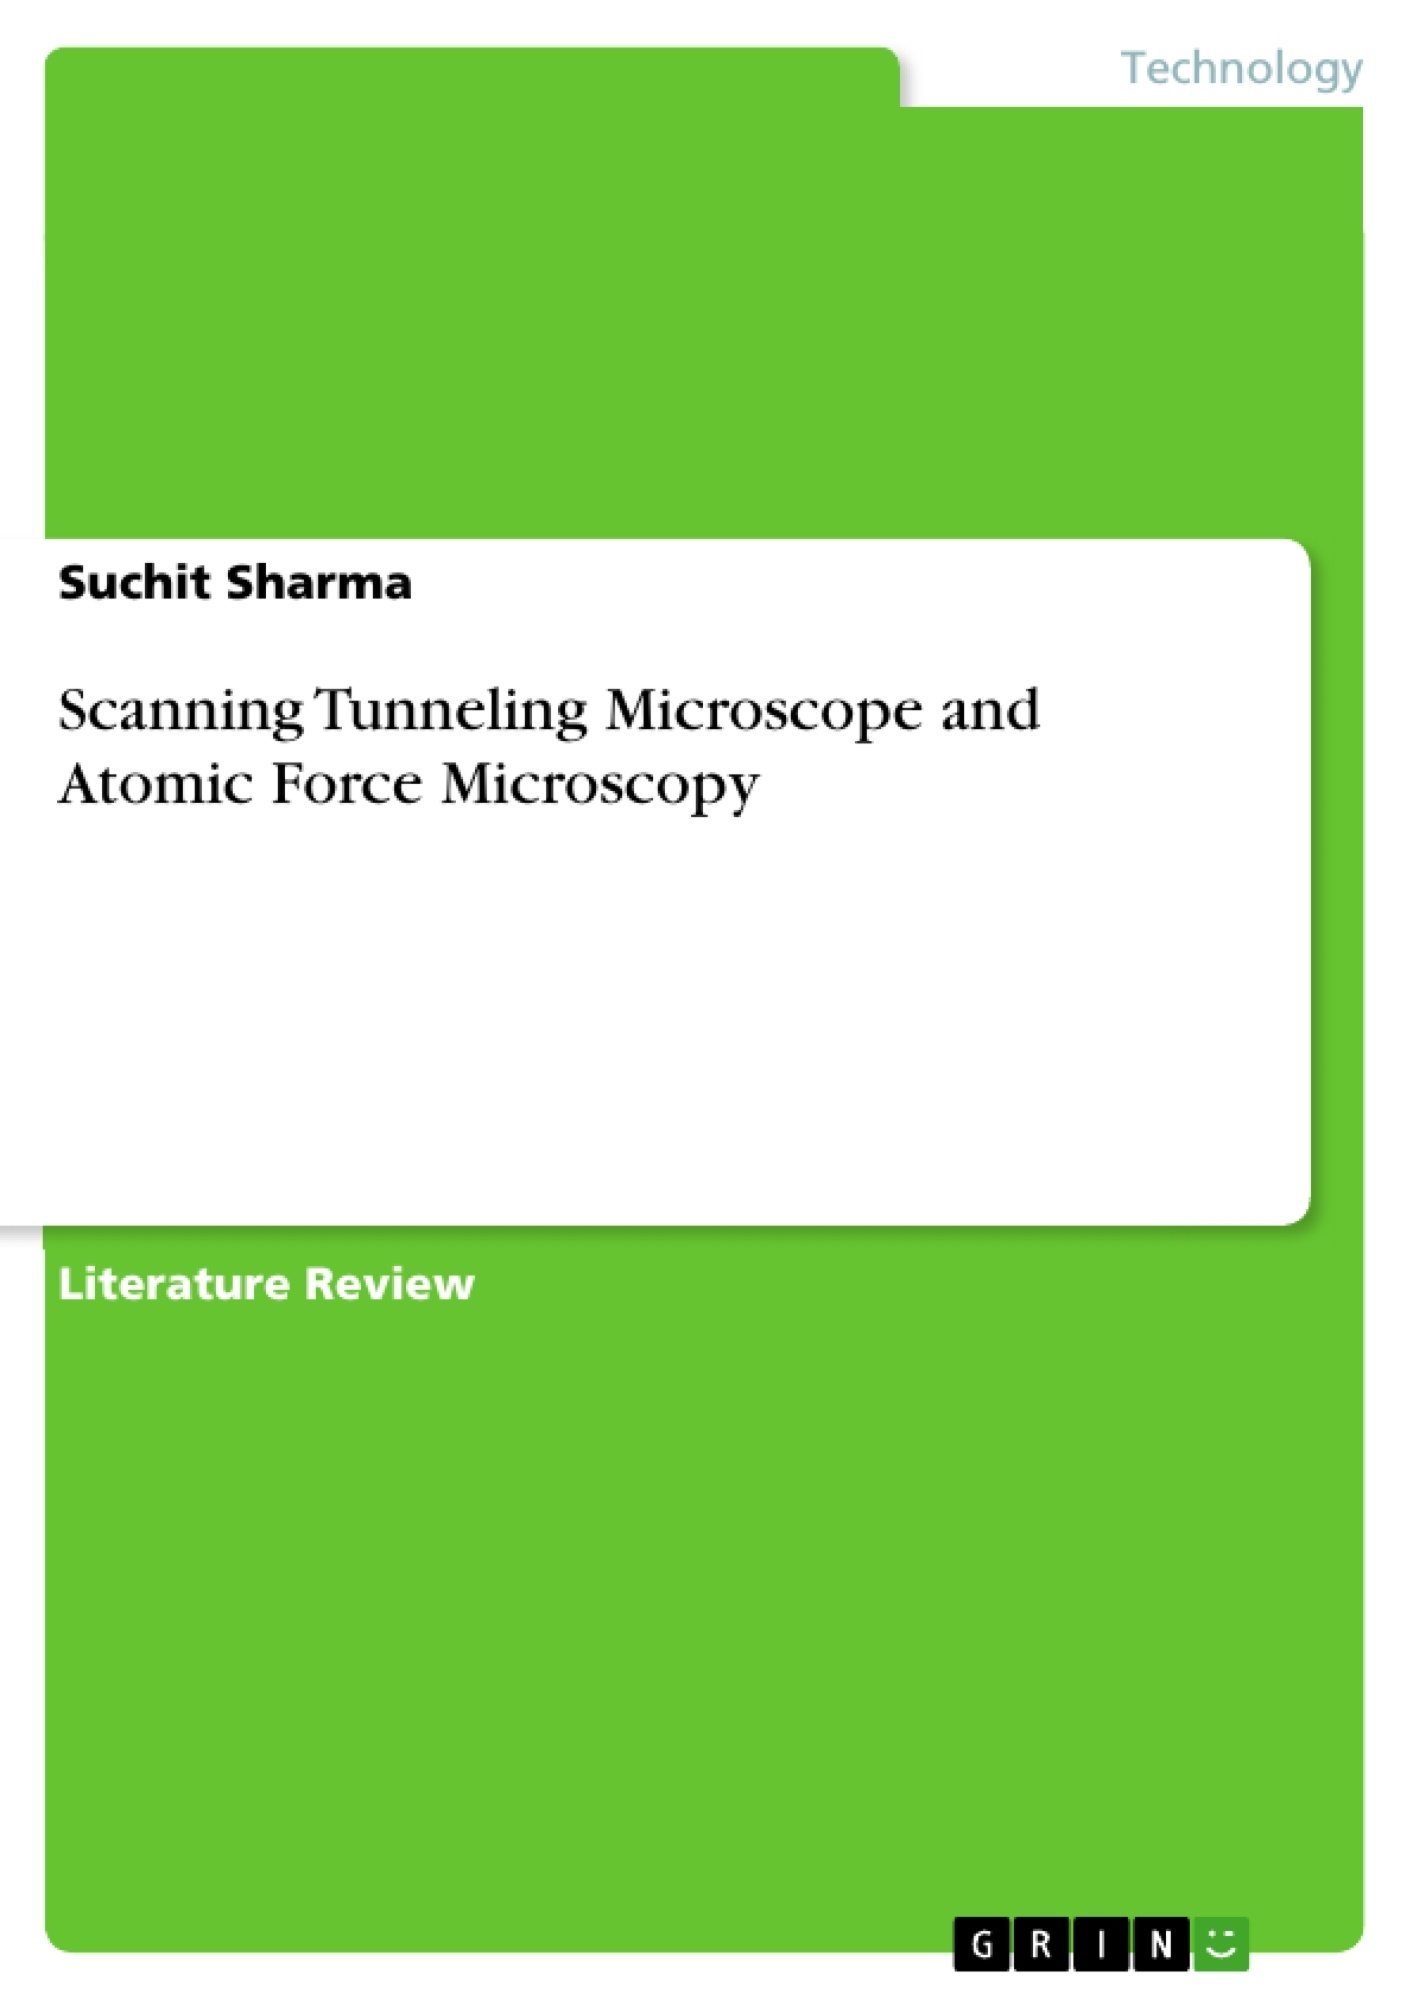 Title: Scanning Tunneling Microscope and Atomic Force Microscopy